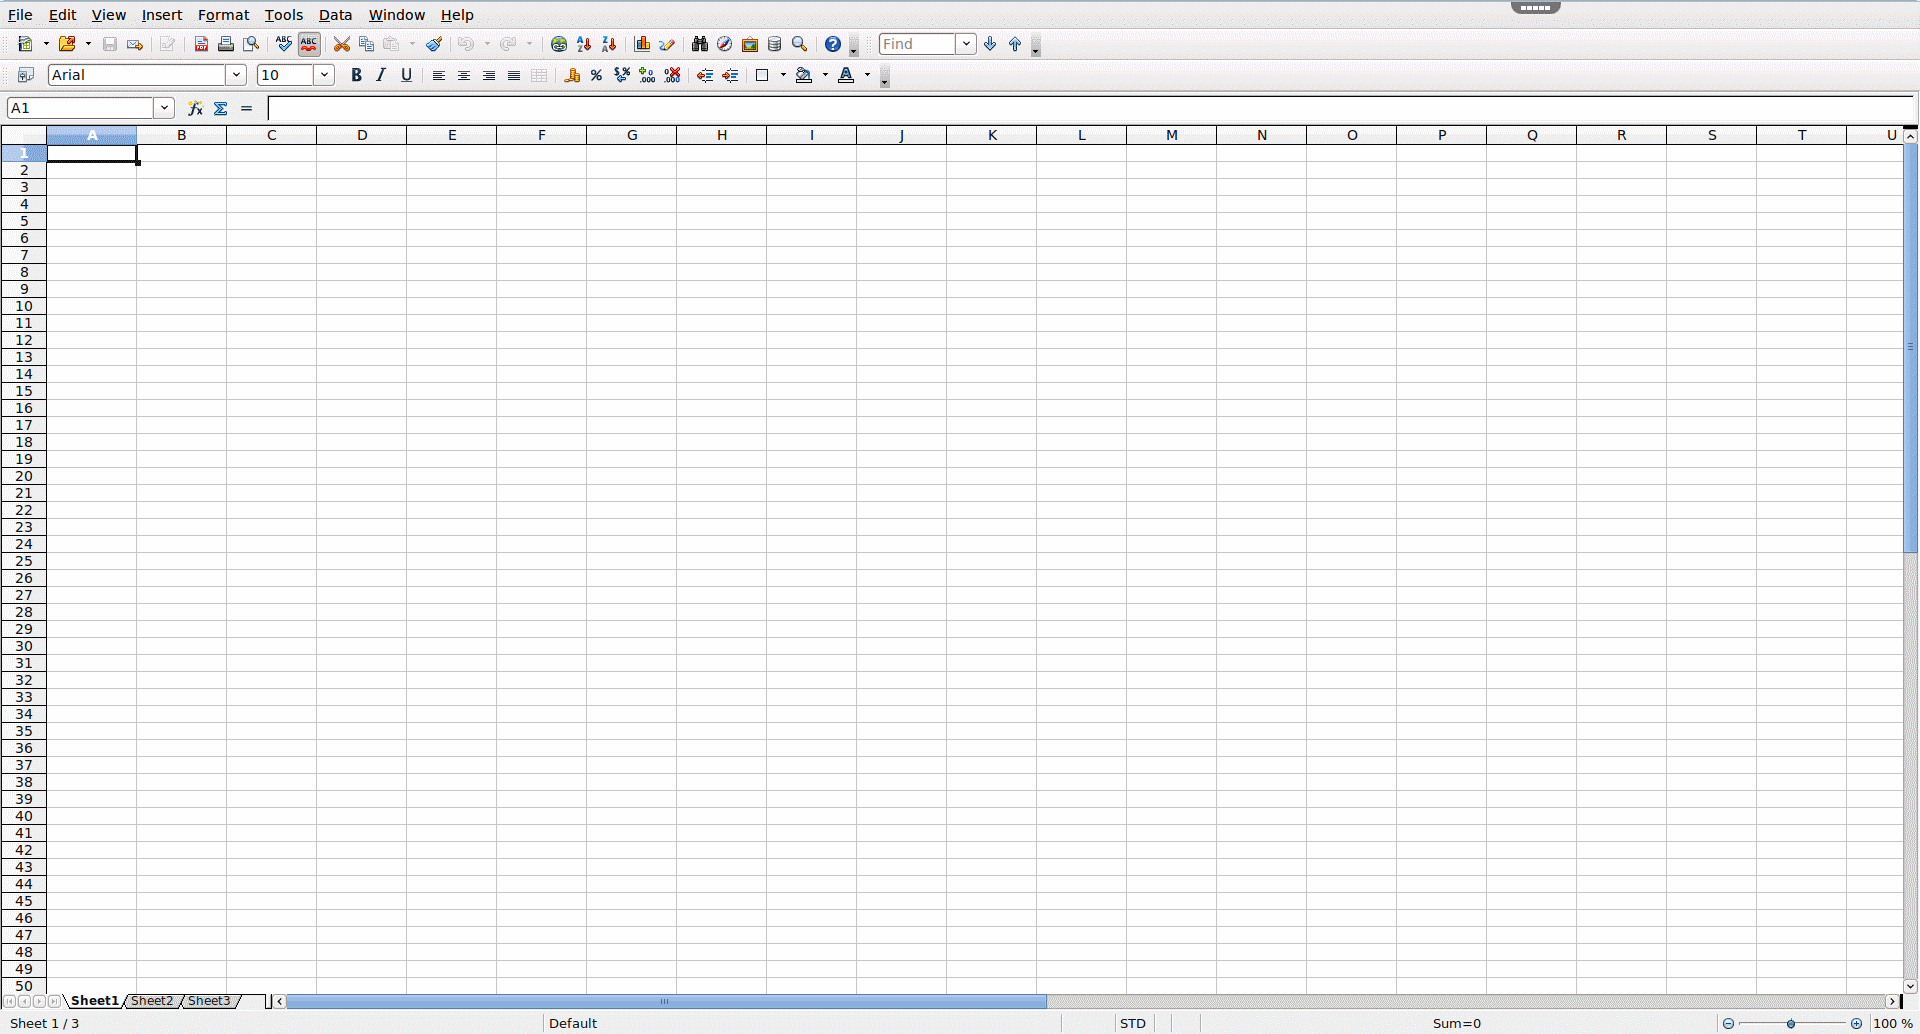 Free Microsoft Excel alternatives - 1&1 IONOS